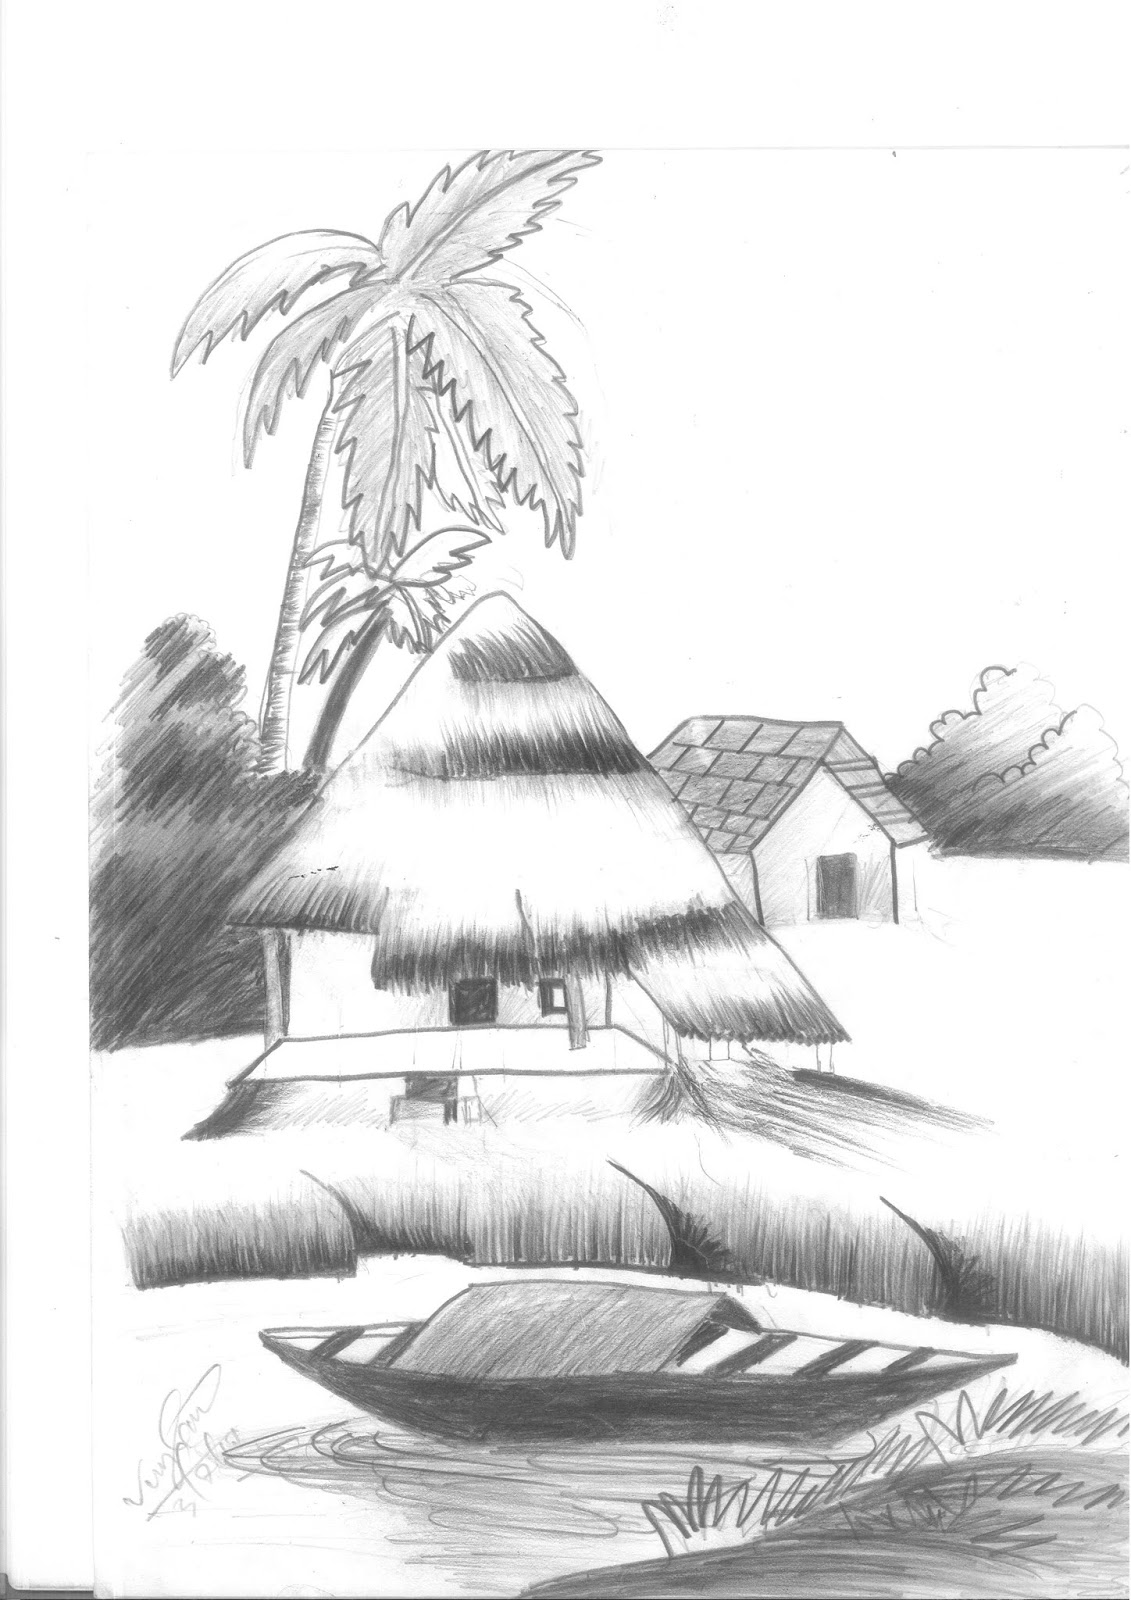 Village nature pencil sketch